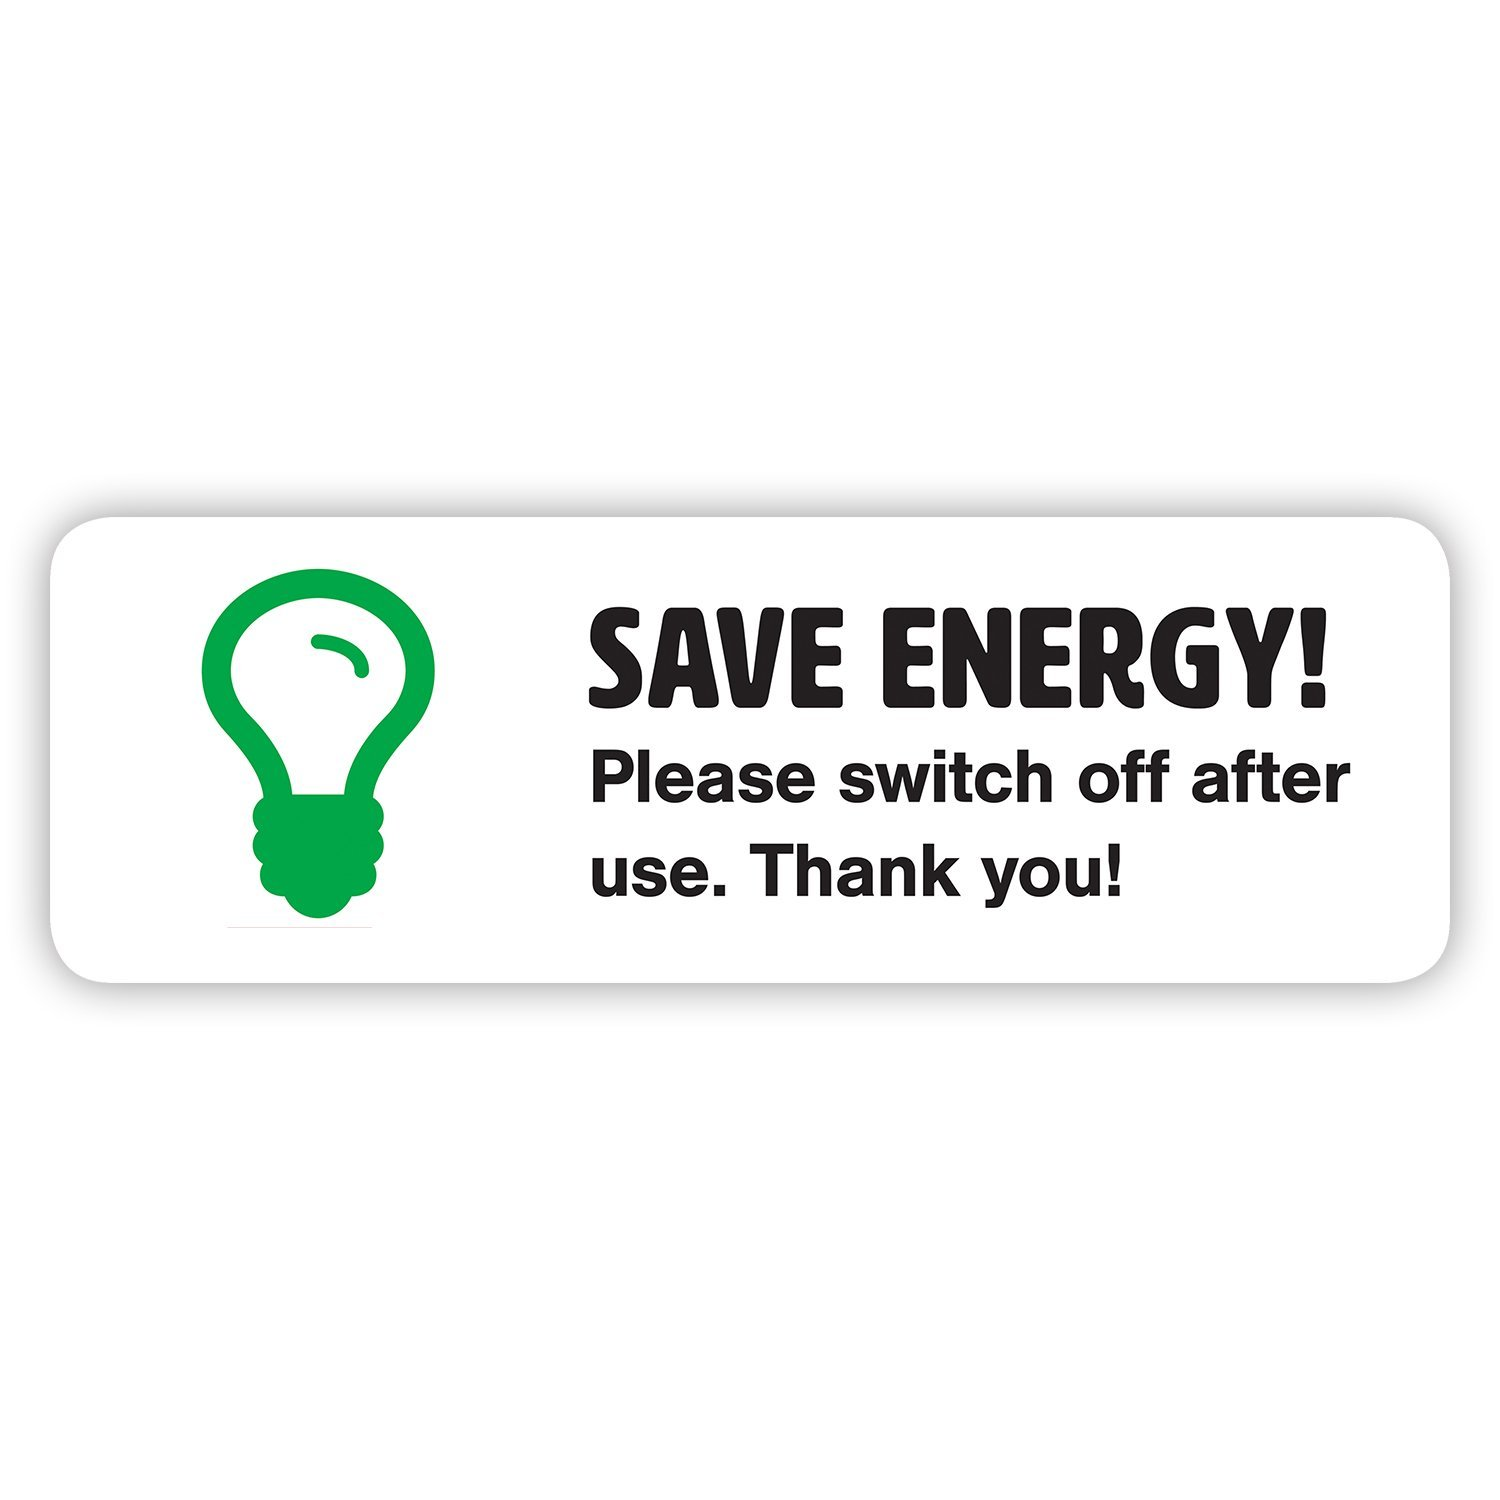 Junk Mail Blocker 10 x Save Energy Sticker Set - Turn off Lights or  Appliances - Light Switch Stickers (Small - 6 6 x 2 2 cm)